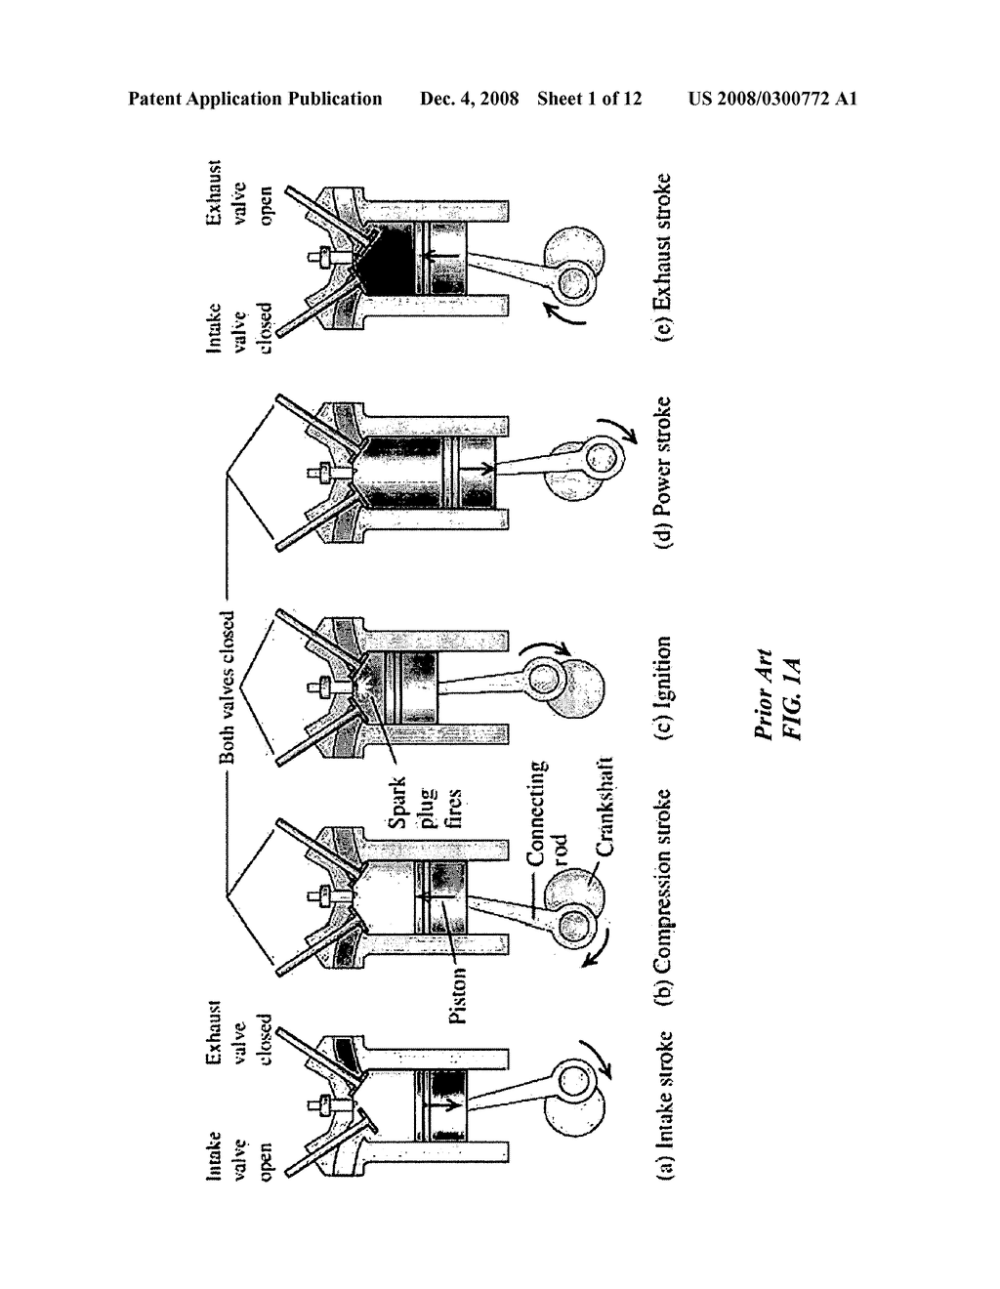 medium resolution of high efficiency internal combustion engine diagram schematic and image 02